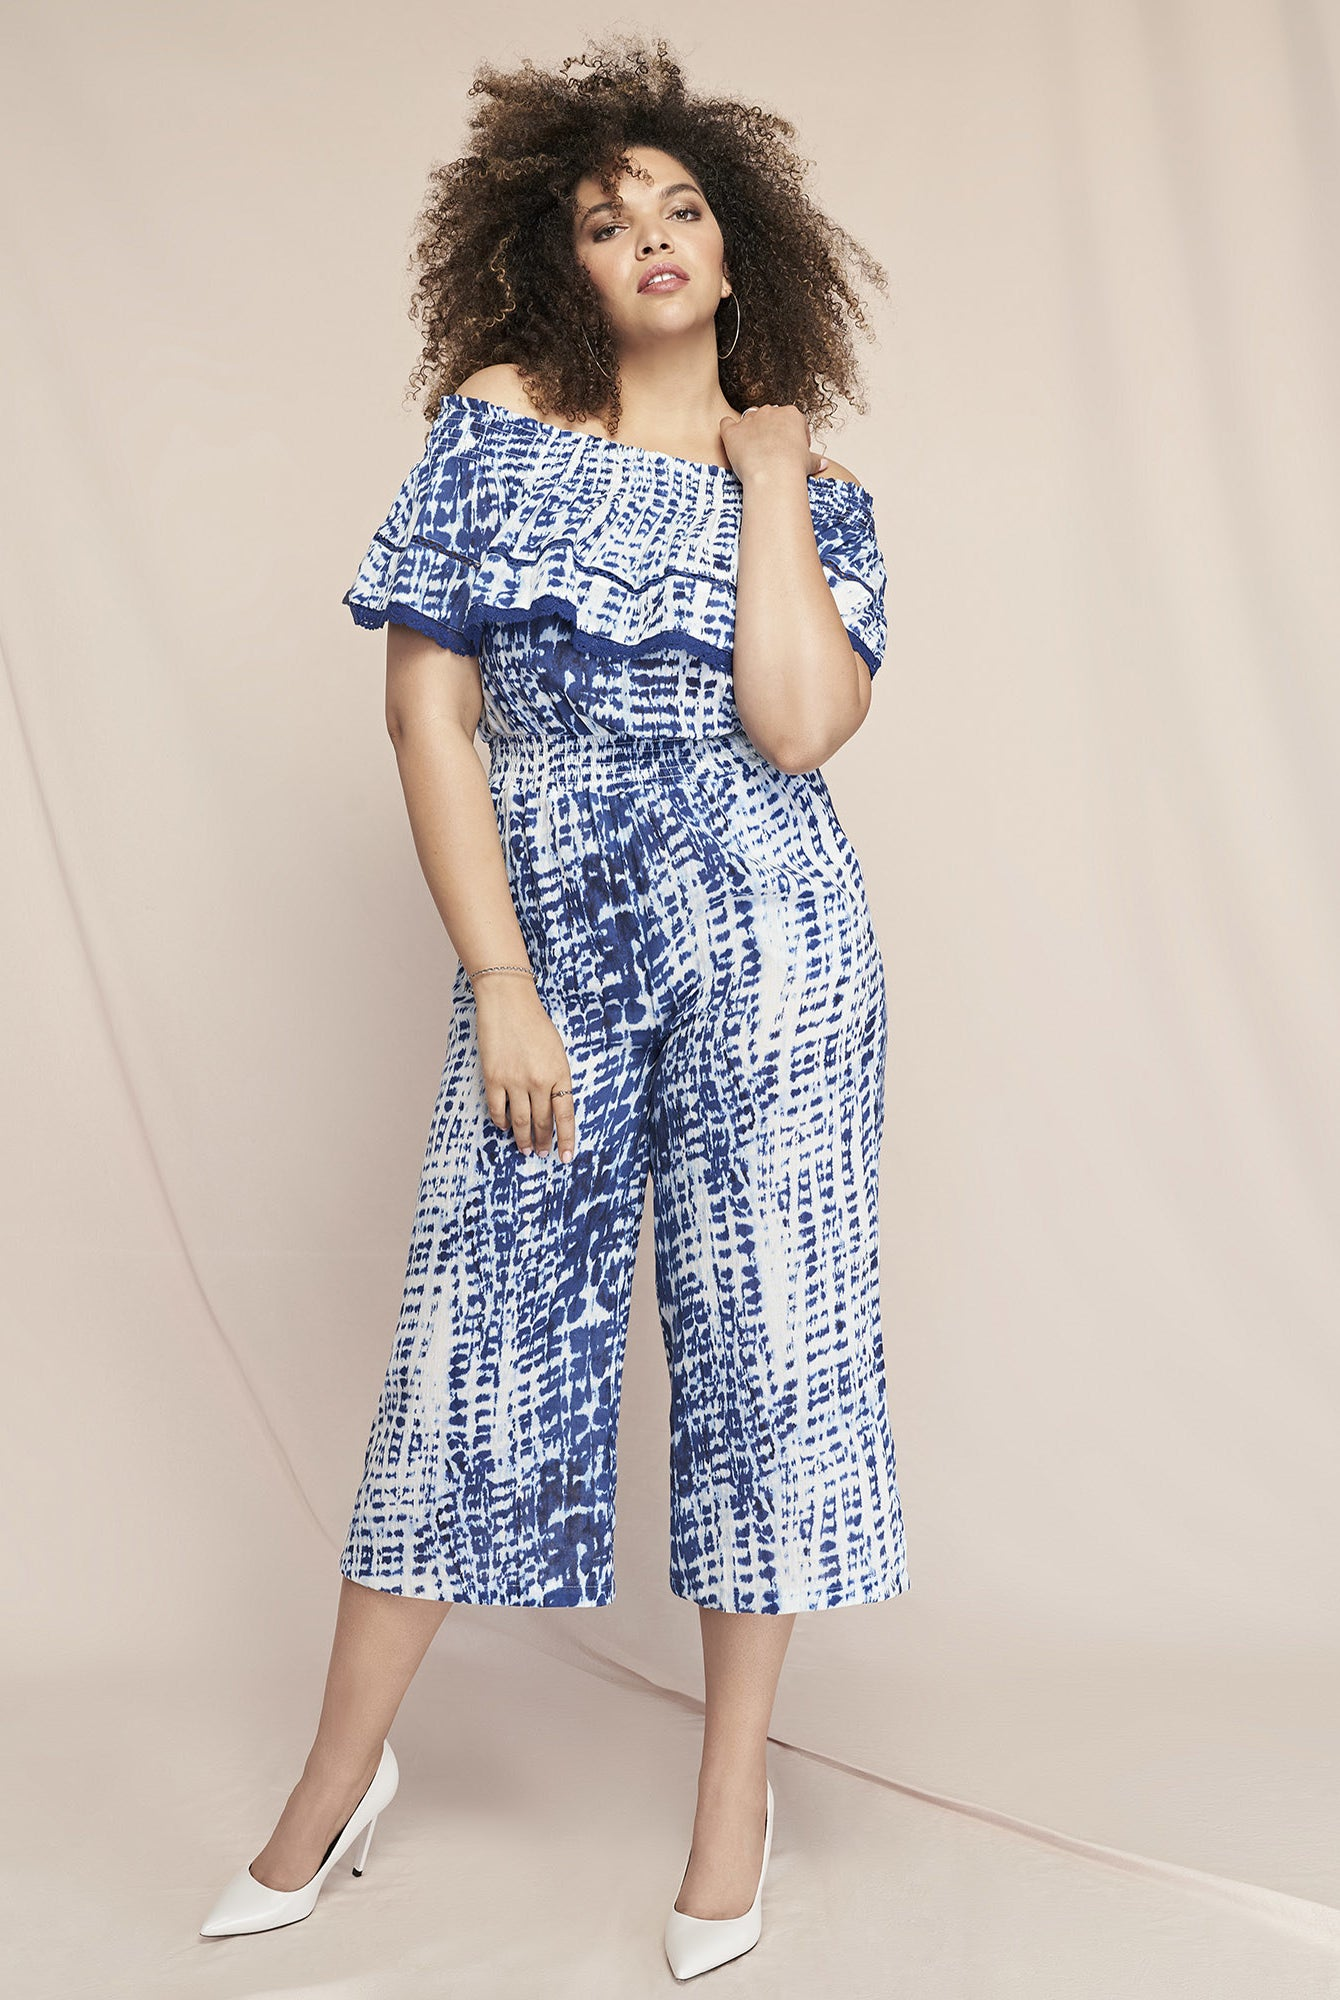 Model wearing the blue and white patterned jumpsuit